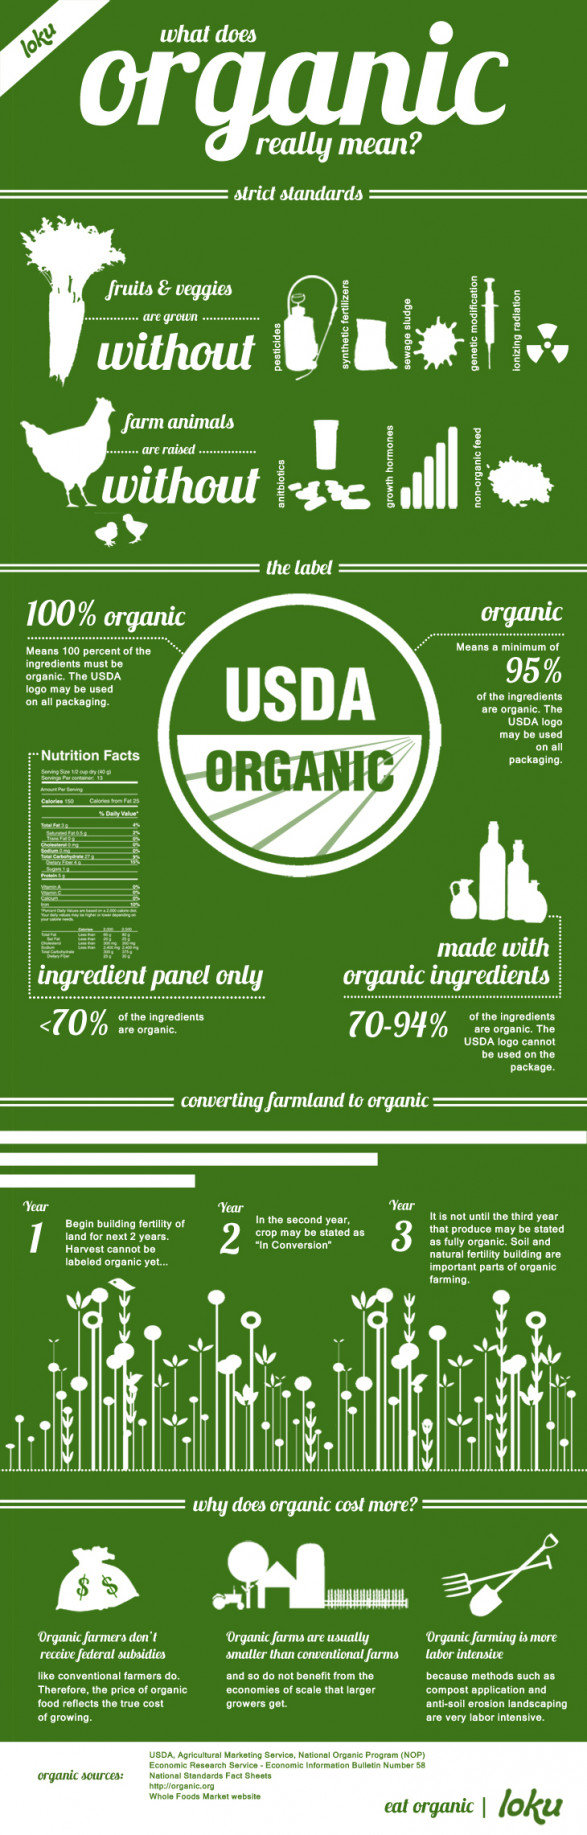 what dpes organic mean, what is organic, what does organic really mean, what is organic farming, organic food production, organic food, organic drinks, organic food labels, which food should you eat organic, why buy organic food, organic food store, organic food stores, organic farming, organic farms, what is organic farming, organic farming methods, organic food production